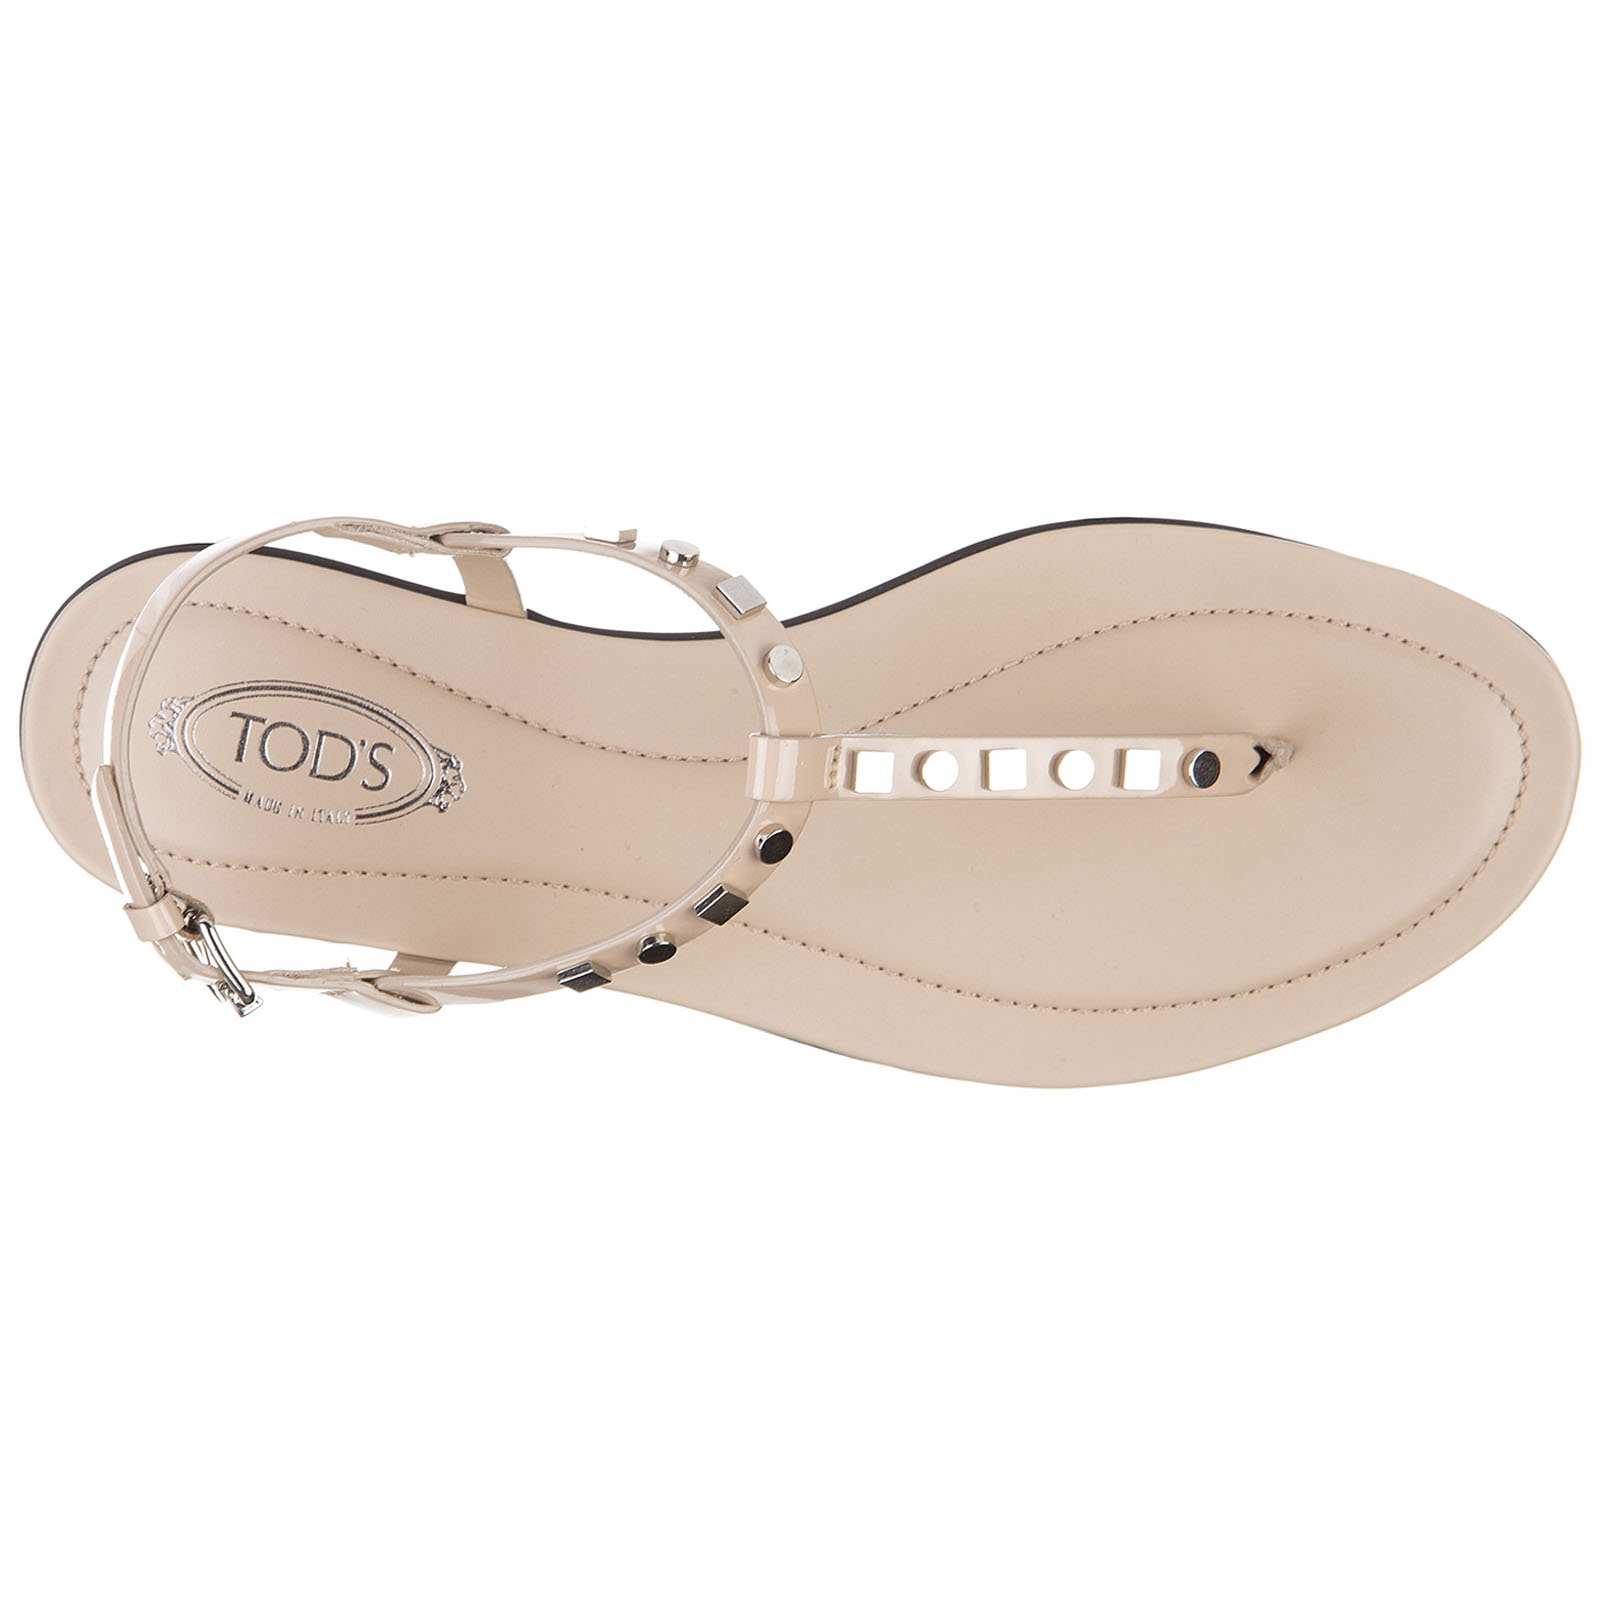 Women's leather flip flops sandals